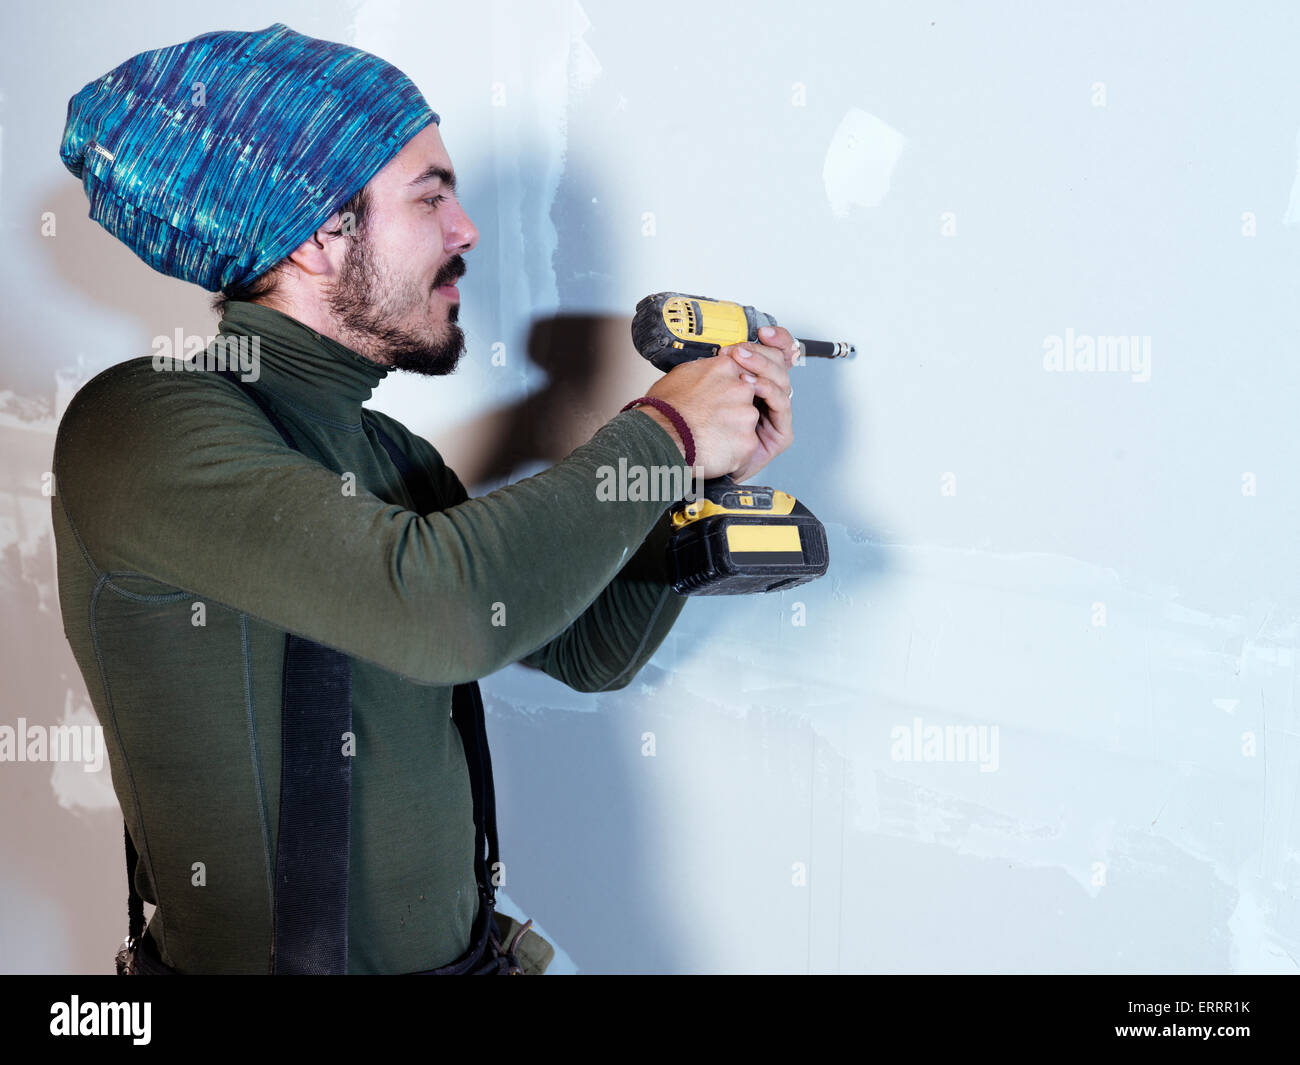 Portrait of a smiling young man contractor worker mounting drywall with a screw gun renovating interior - Stock Image